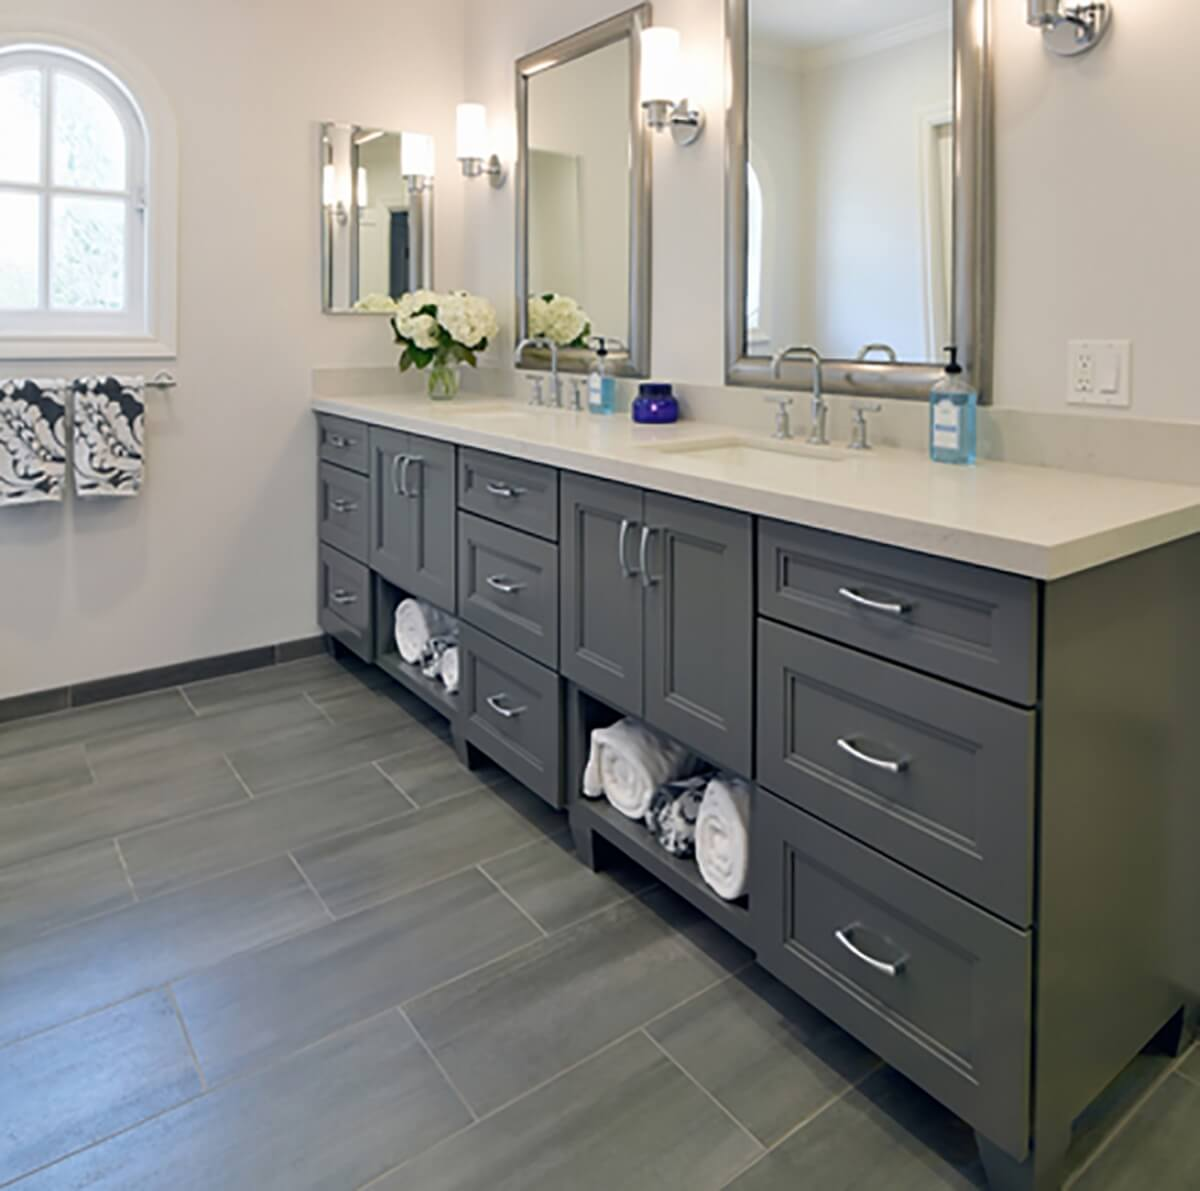 A master bathroom with a dark gray painted vanity with open storage for bath towels. Featuring a nickel finish on the cabinet hardware, plumbing fixtures, faucet, light fixtures, and bathroom mirrors frames. A lighter gray colored floor tile complements the dark gray vanity cabinets.